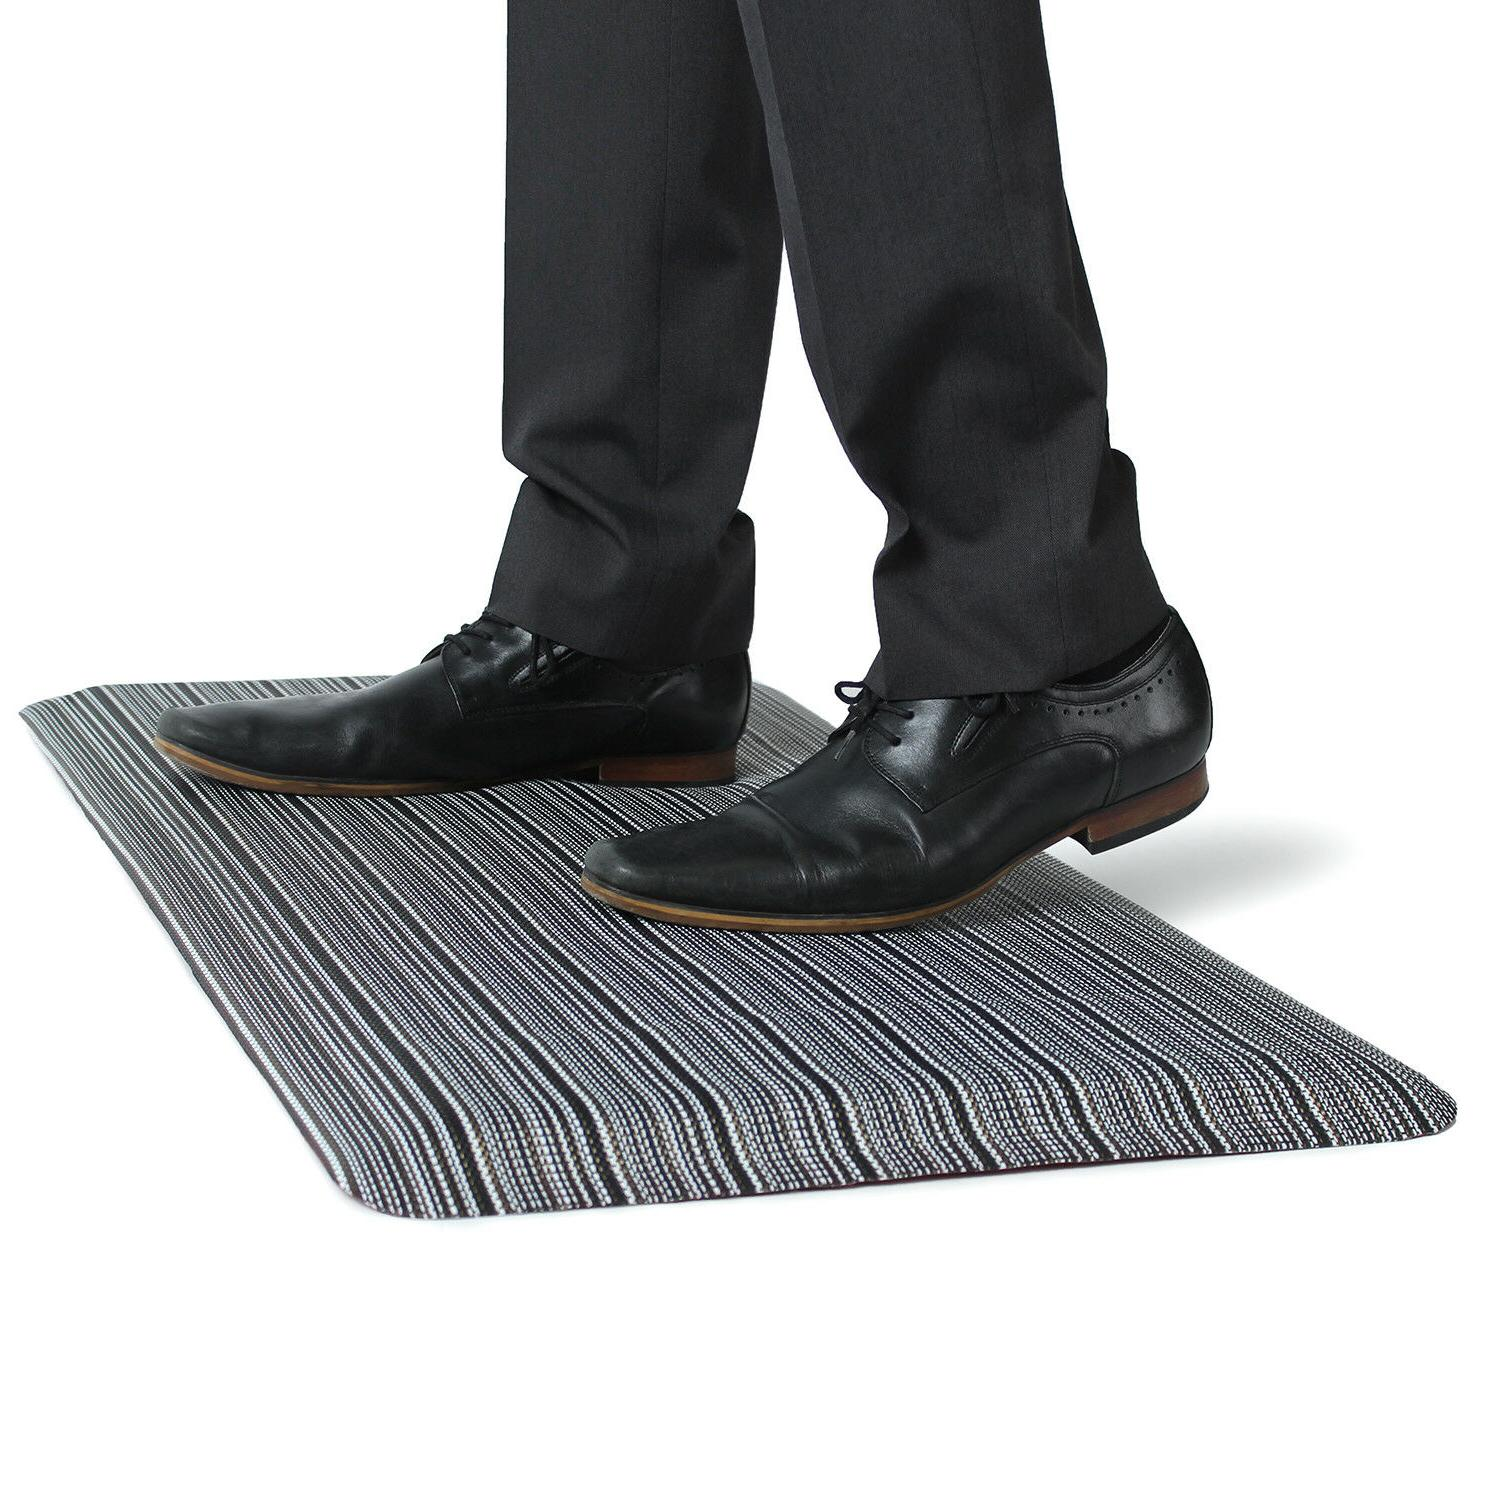 anti fatigue standing mat for office